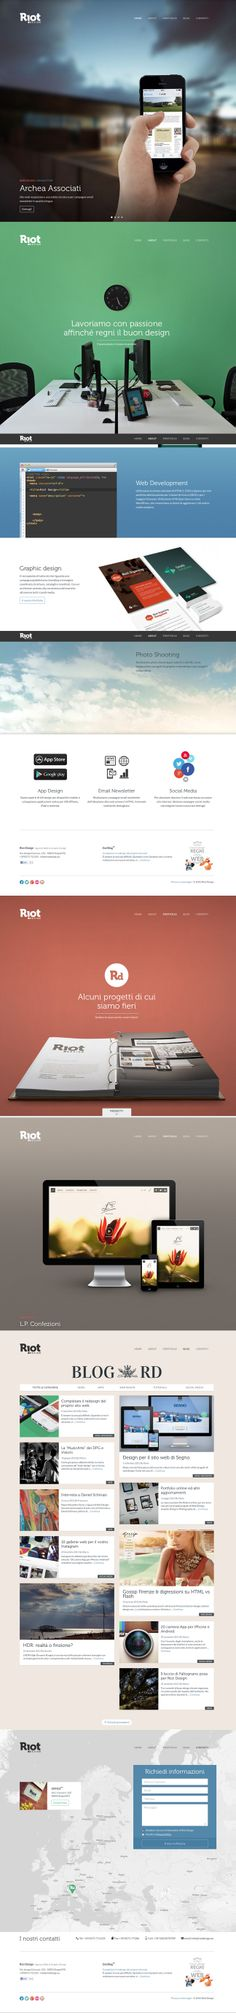 Winner 23 September Riot Design by Riot design #webdesign #design